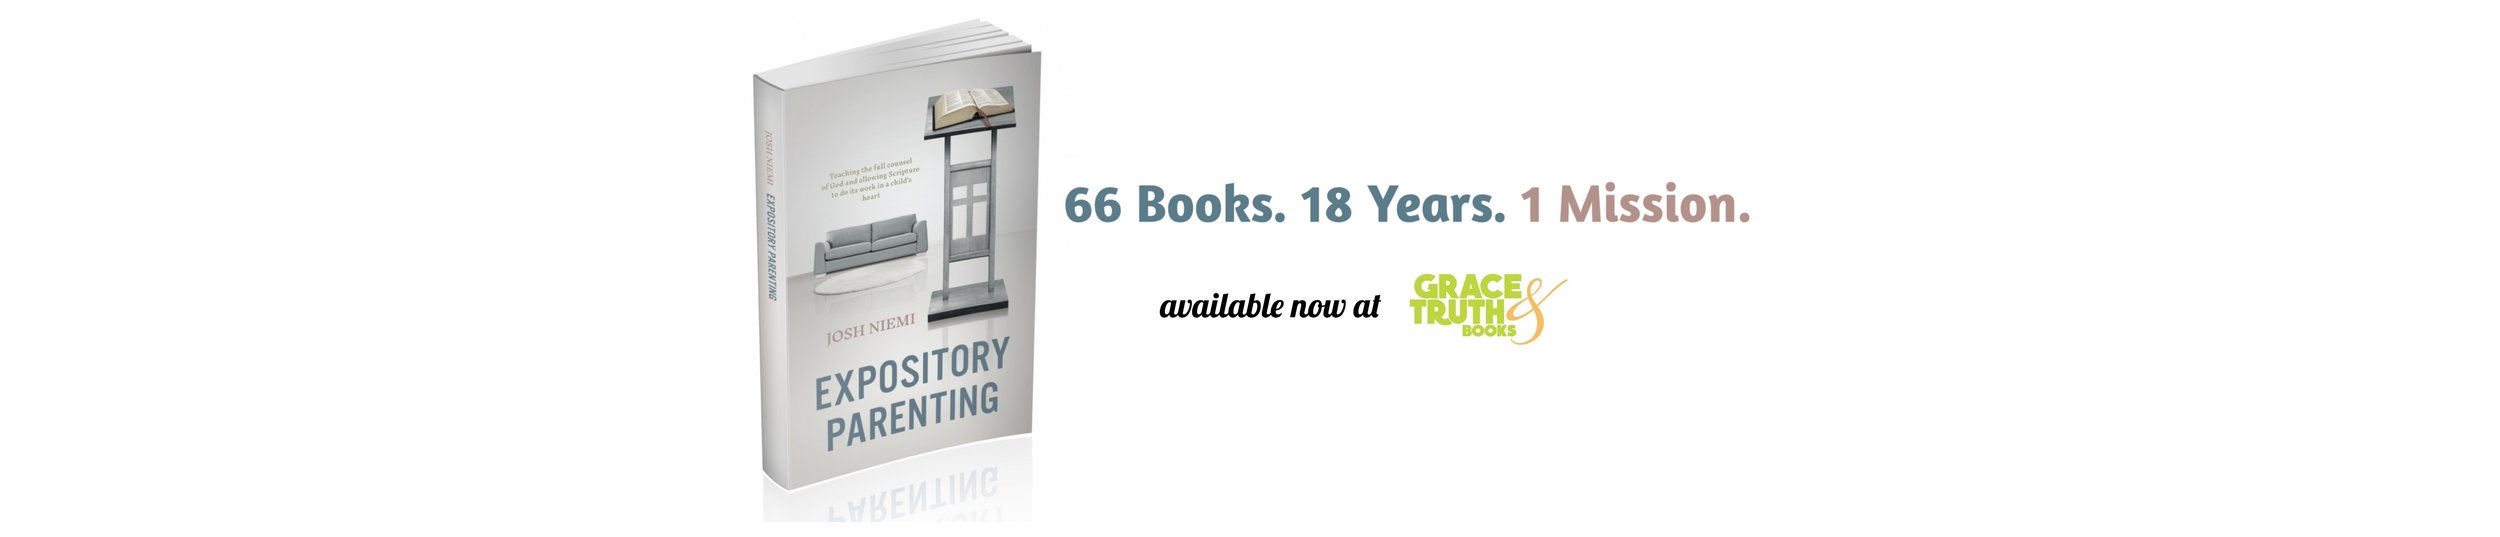 66books_GRACETRUTH_banner.jpg